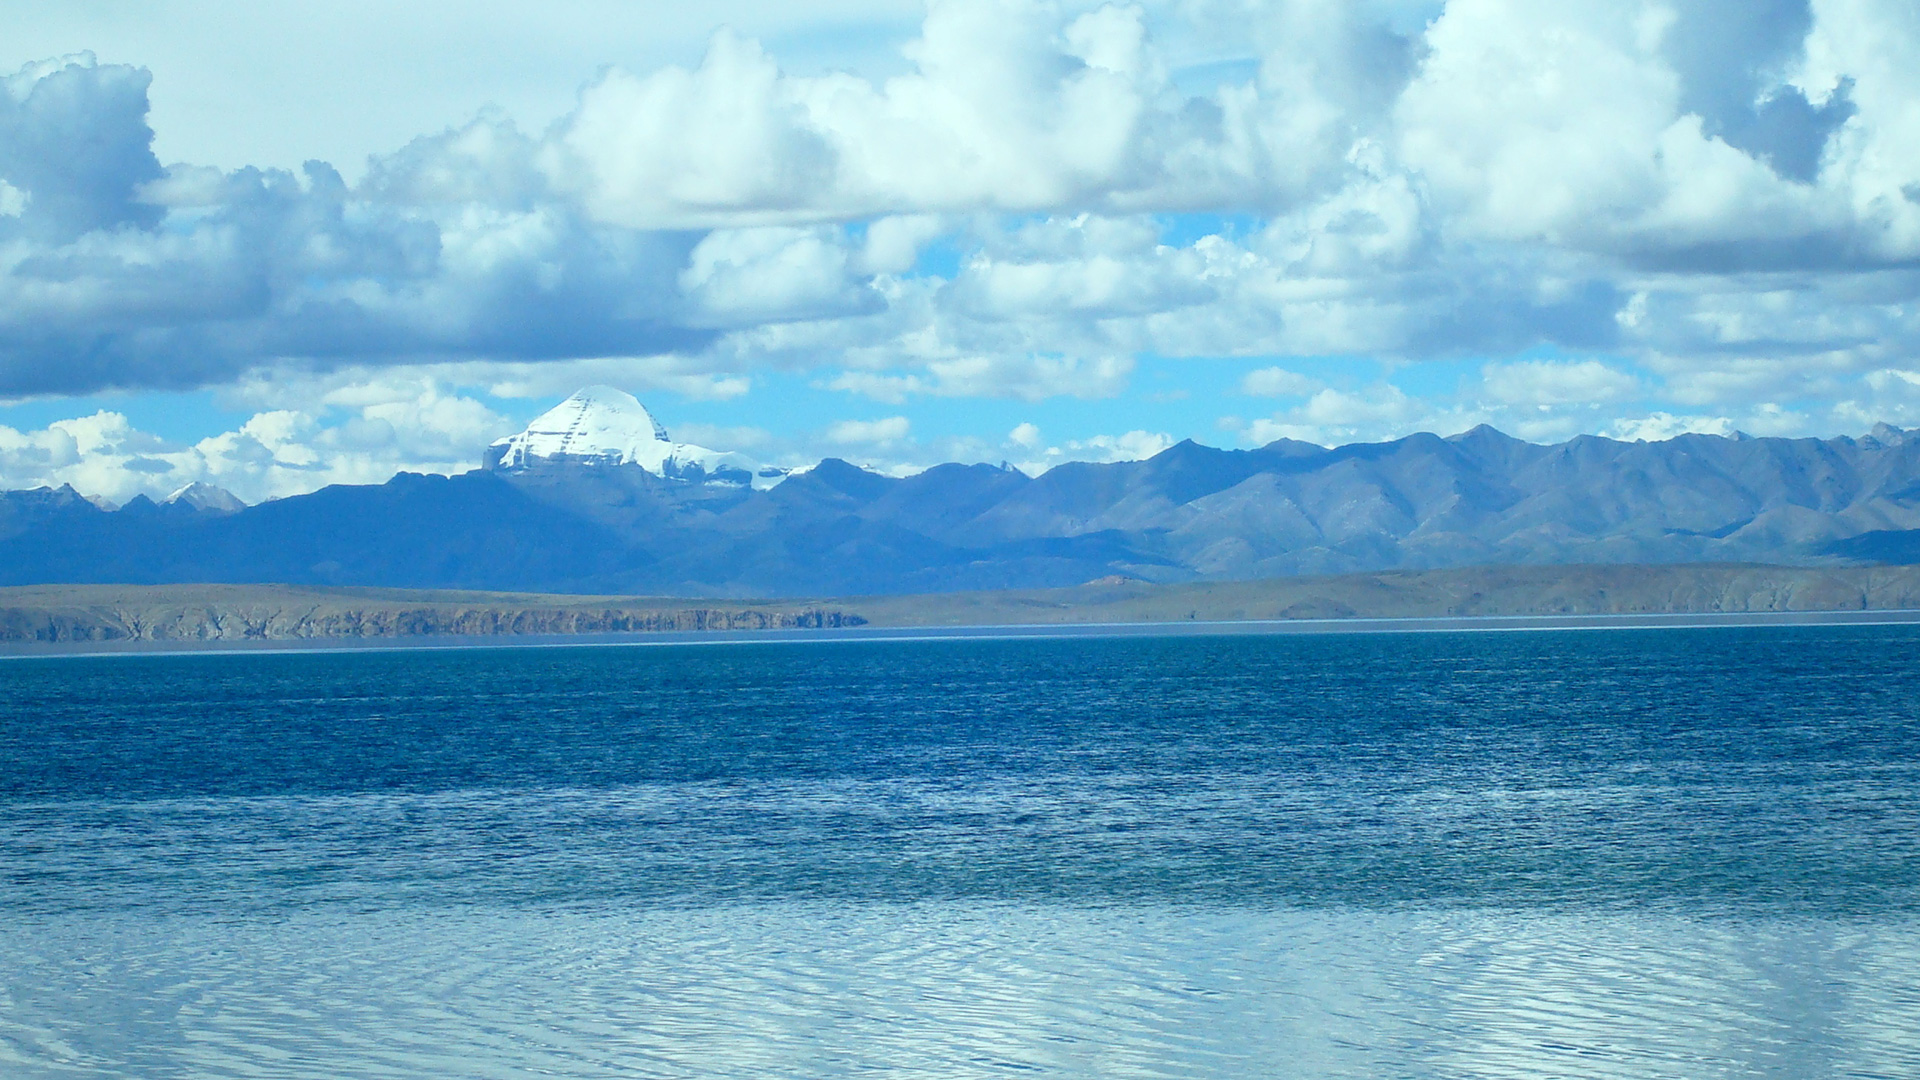 Mount Kailash Tour via Heli To & From Hilsa